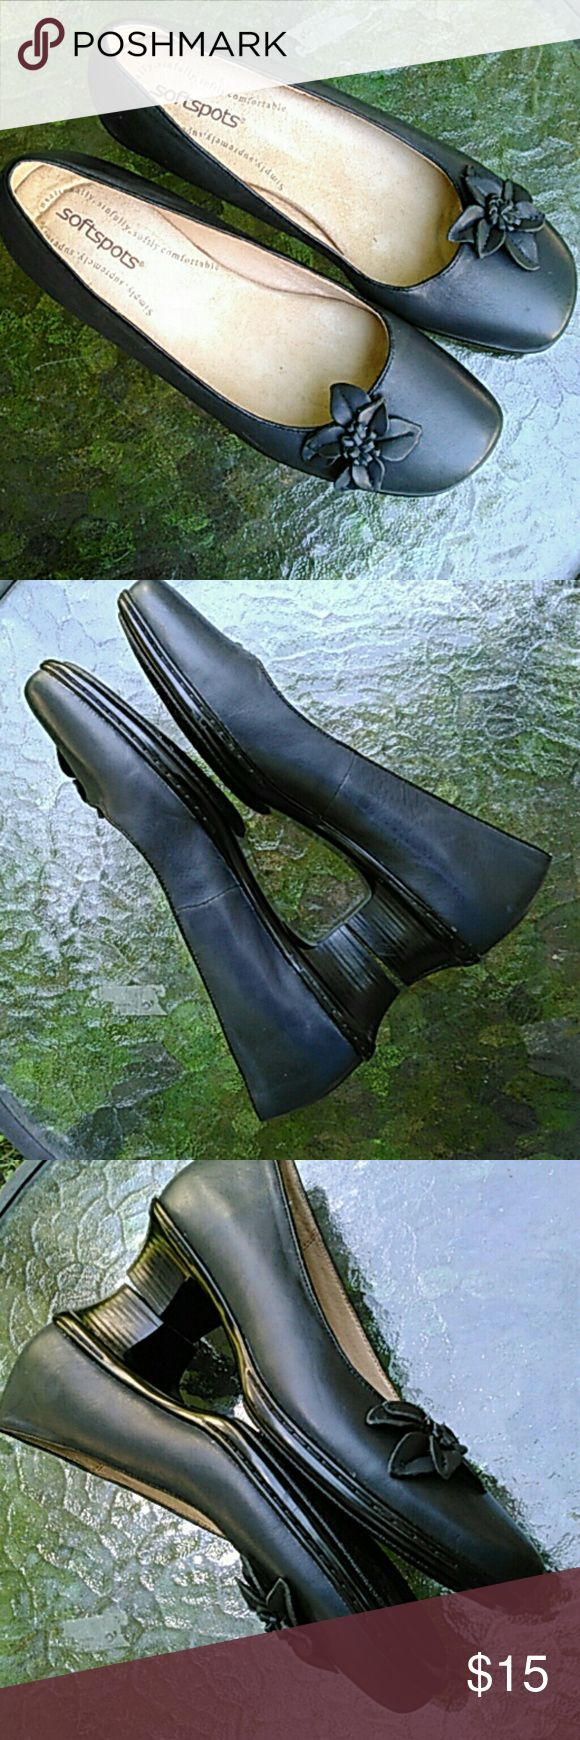 """Dark Blue Soft Spots Ladies Shoes 9M Soft Spots Ladies Shoes  Dark Blue  Cute flower detail over the toe, off center Loafer styling for comfort Heel approximately 1 1/2"""" high Leather upper Man-made balance 9M  Very comfortable. Excellent used condition. Worn a couple three times indoors. Please see pic of sole. Soft Spots Shoes Flats & Loafers"""